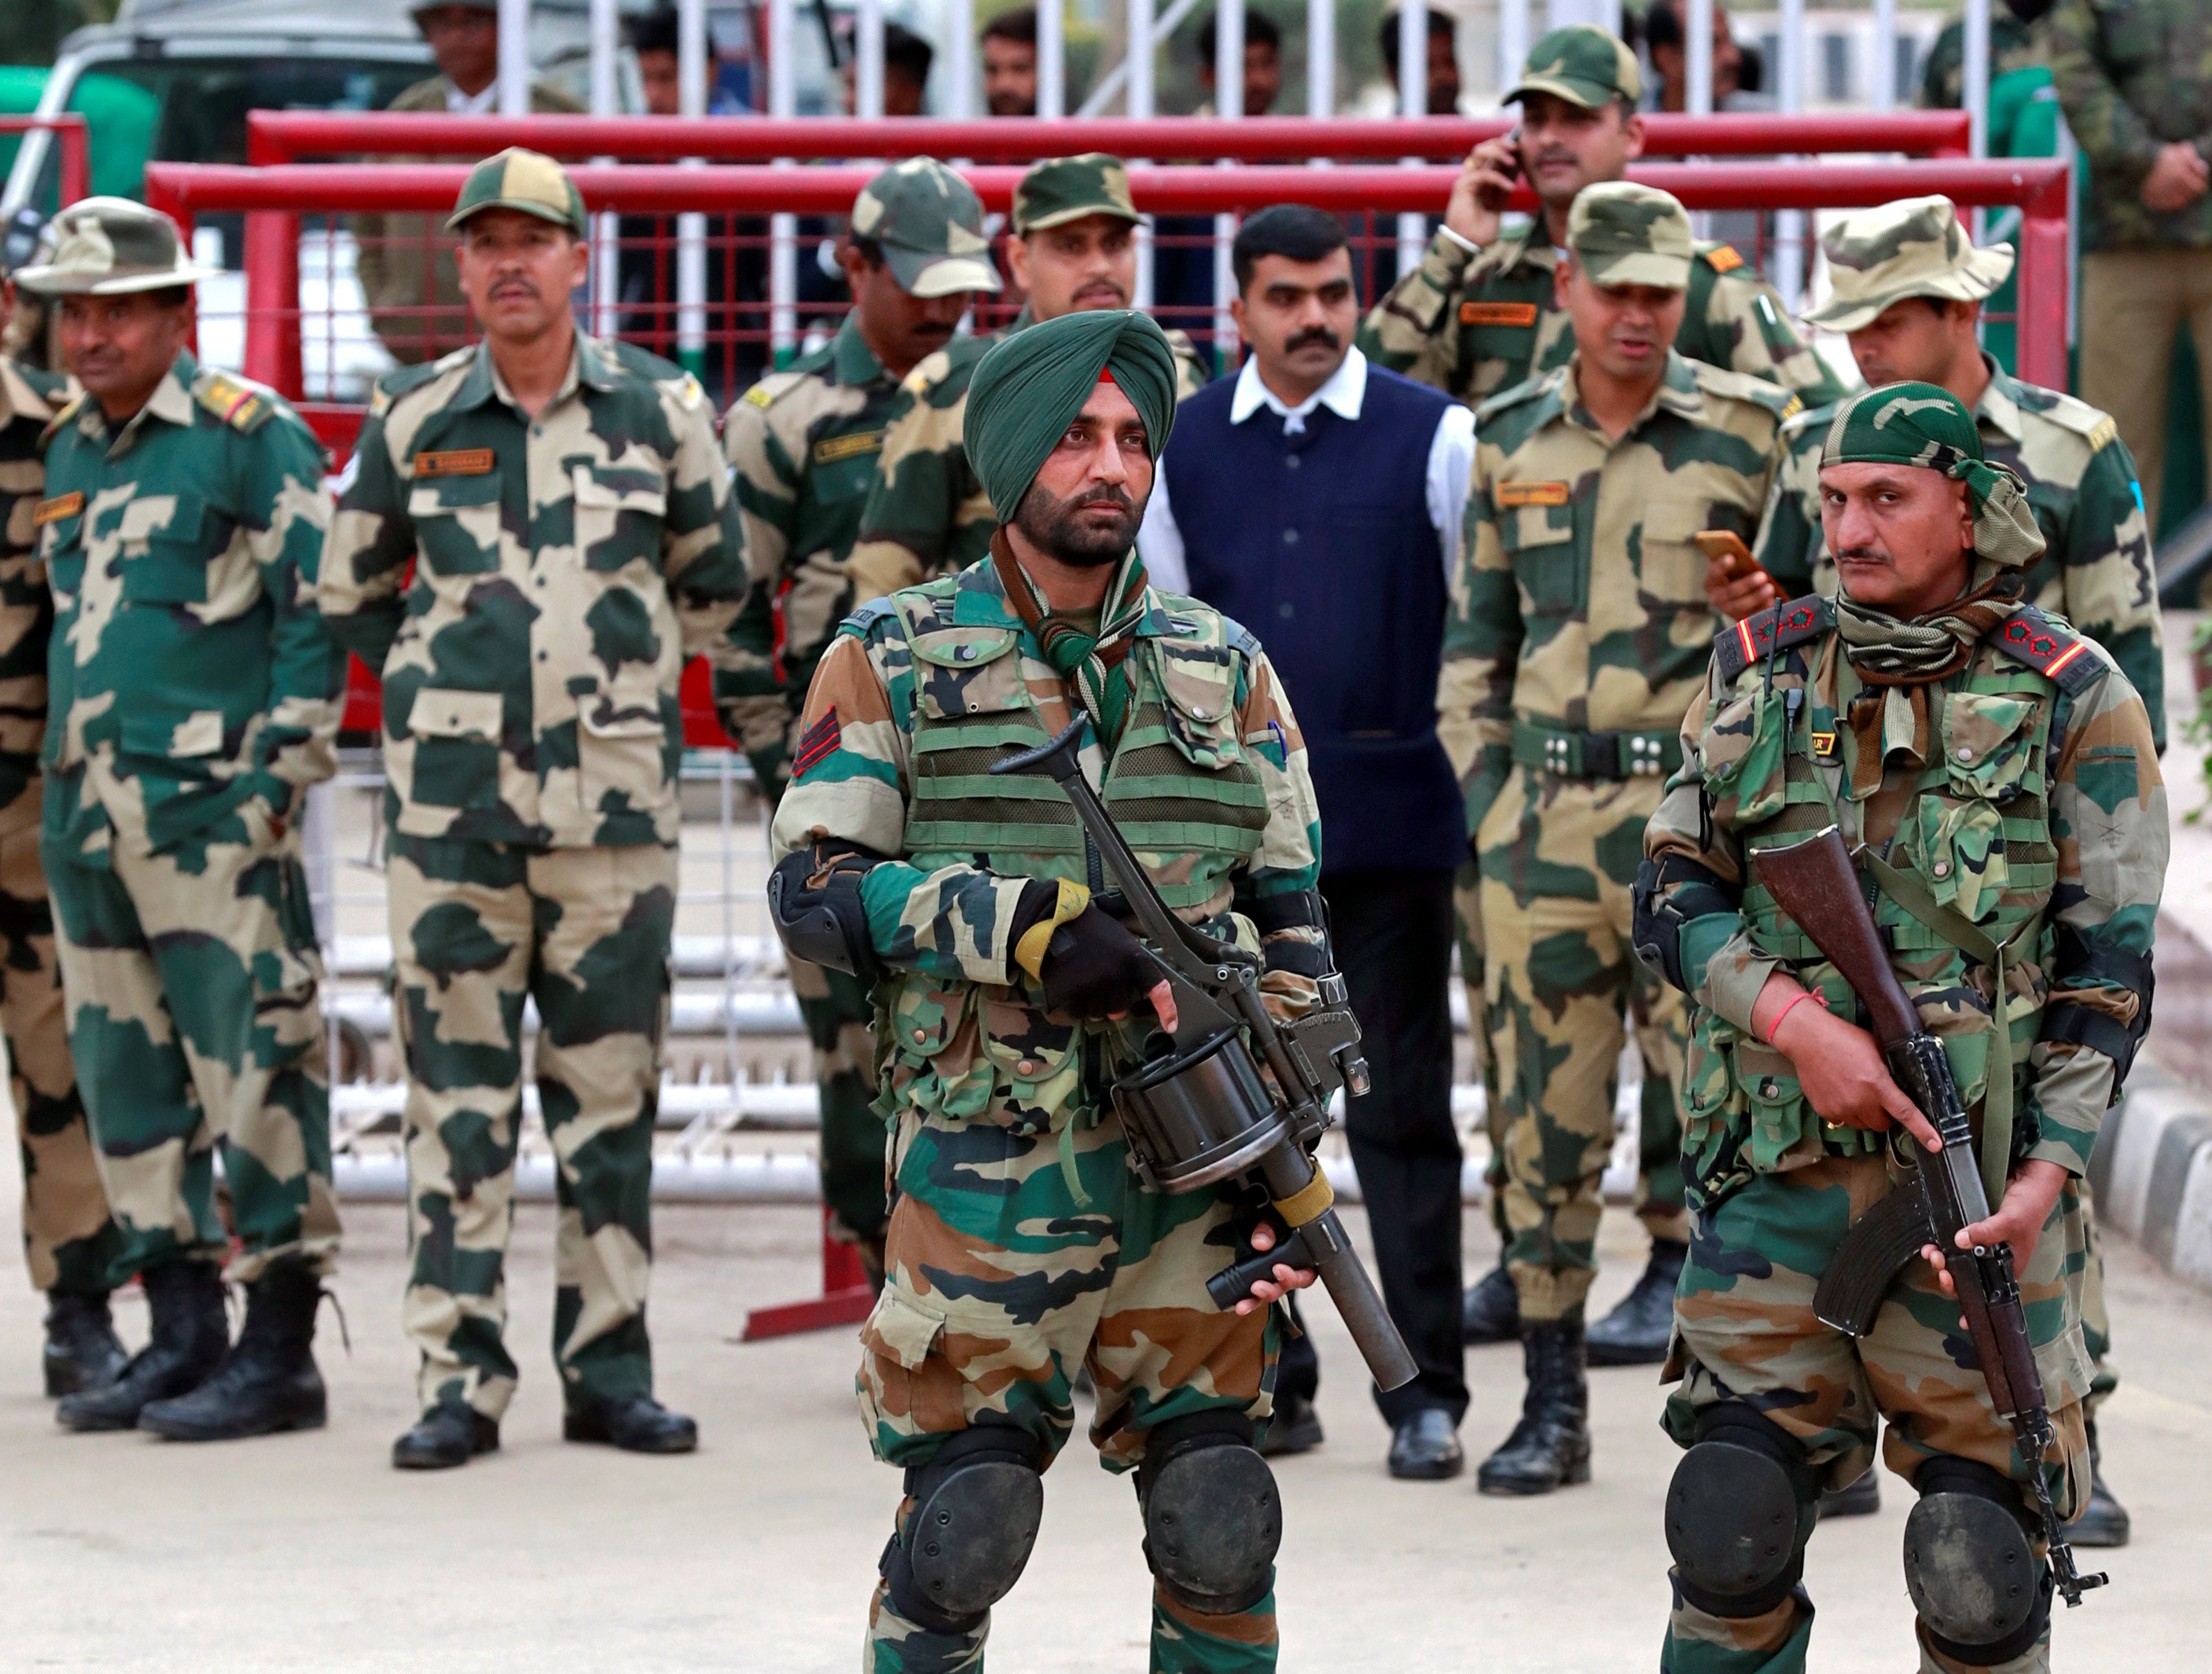 Indian soldiers stand guard before the release of Indian Air Force pilot Wing Commander Abhinandan, who was captured by Pakistan on Wednesday, at Wagah border, on the outskirts of the northern city of Amritsar, India, March 1, 2019. (Photo: REUTERS/Danish Siddiqui)